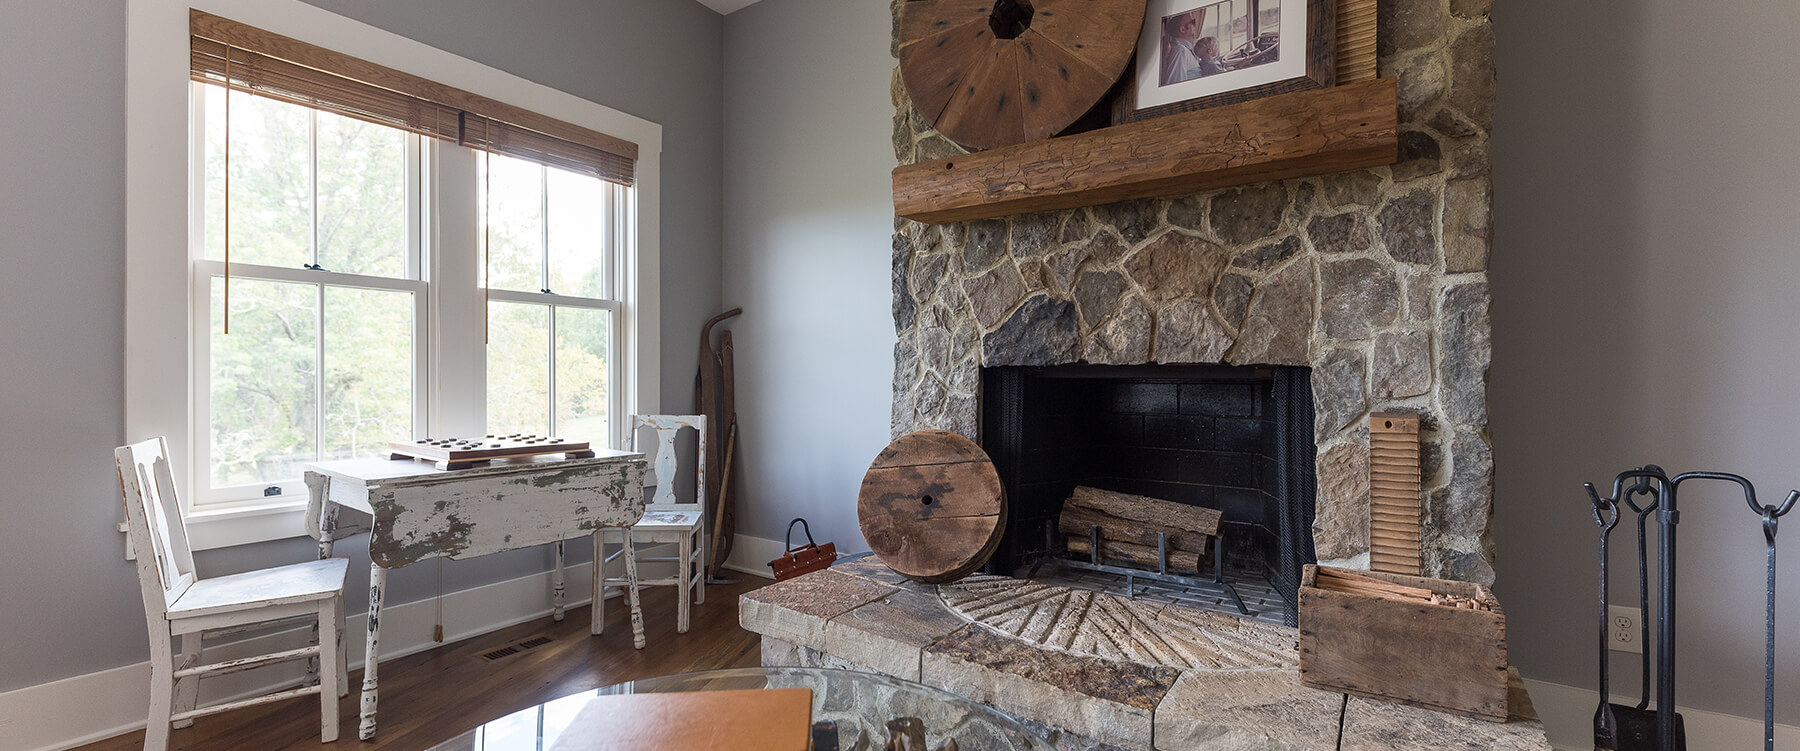 Private residence millstone fireplace